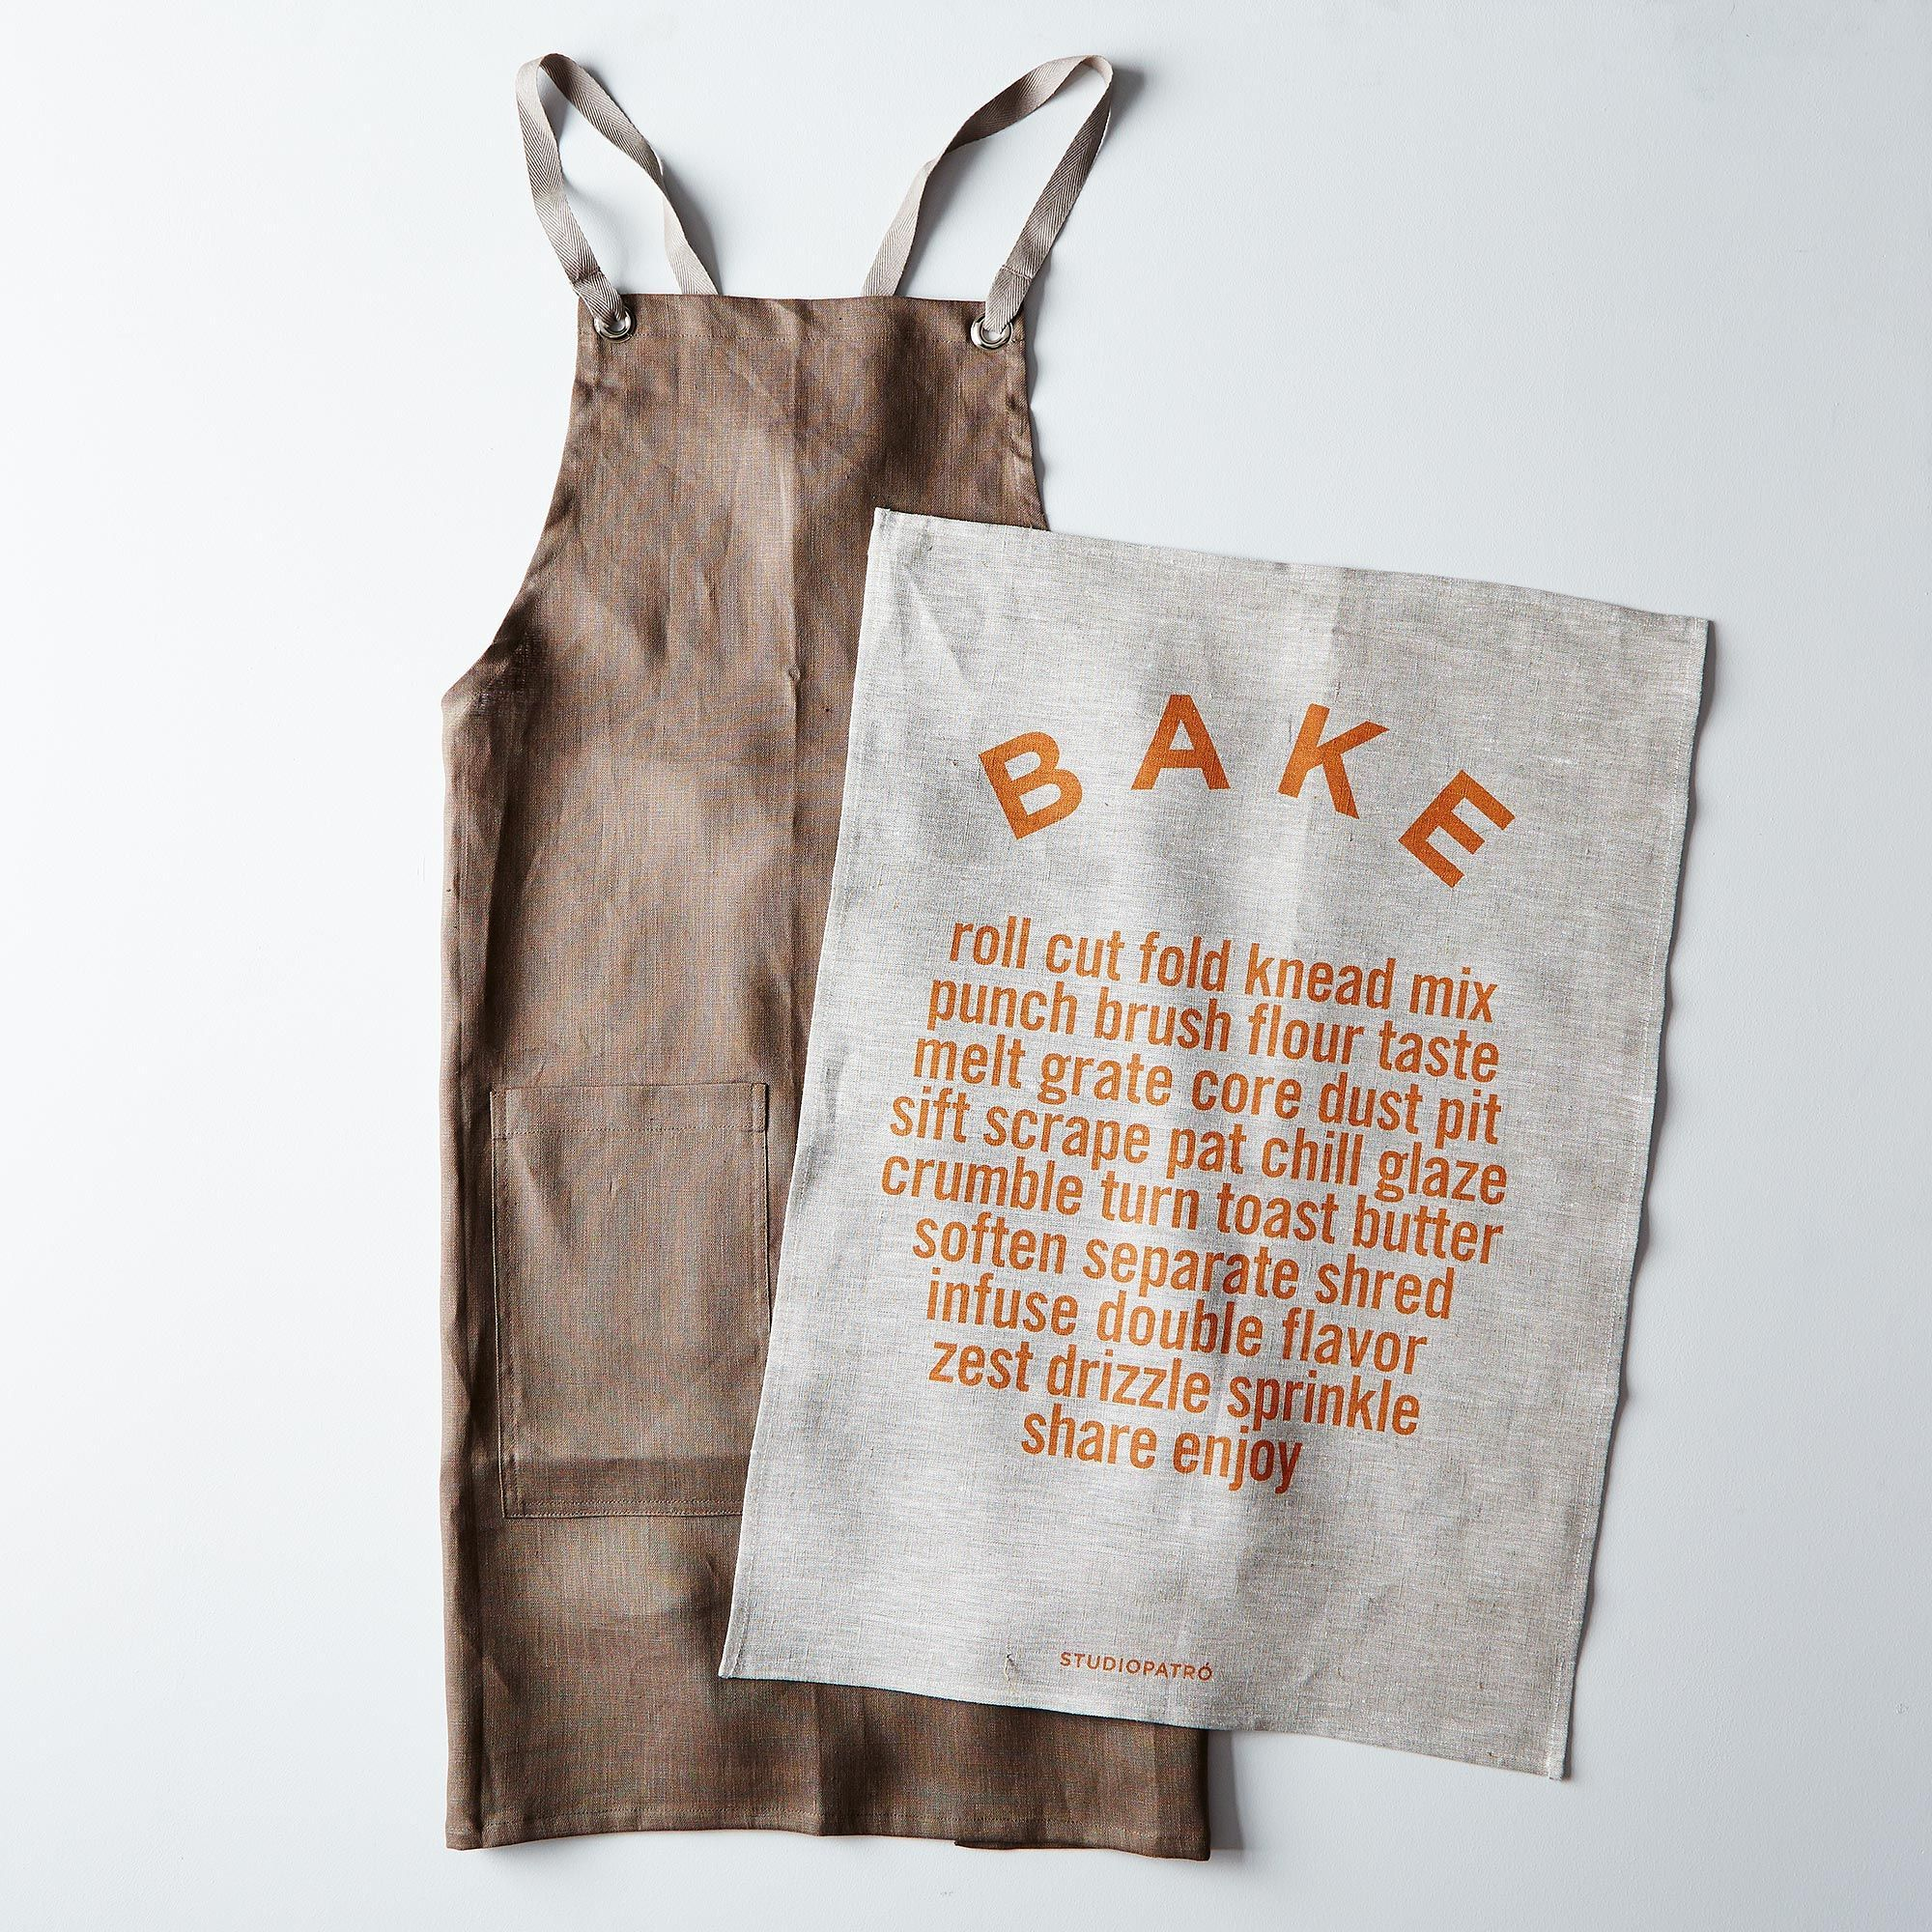 B8086500 22d9 4221 8fed 42a6c56a8848  2014 1022 studiopatro bark apron bake tea towel gift set 003